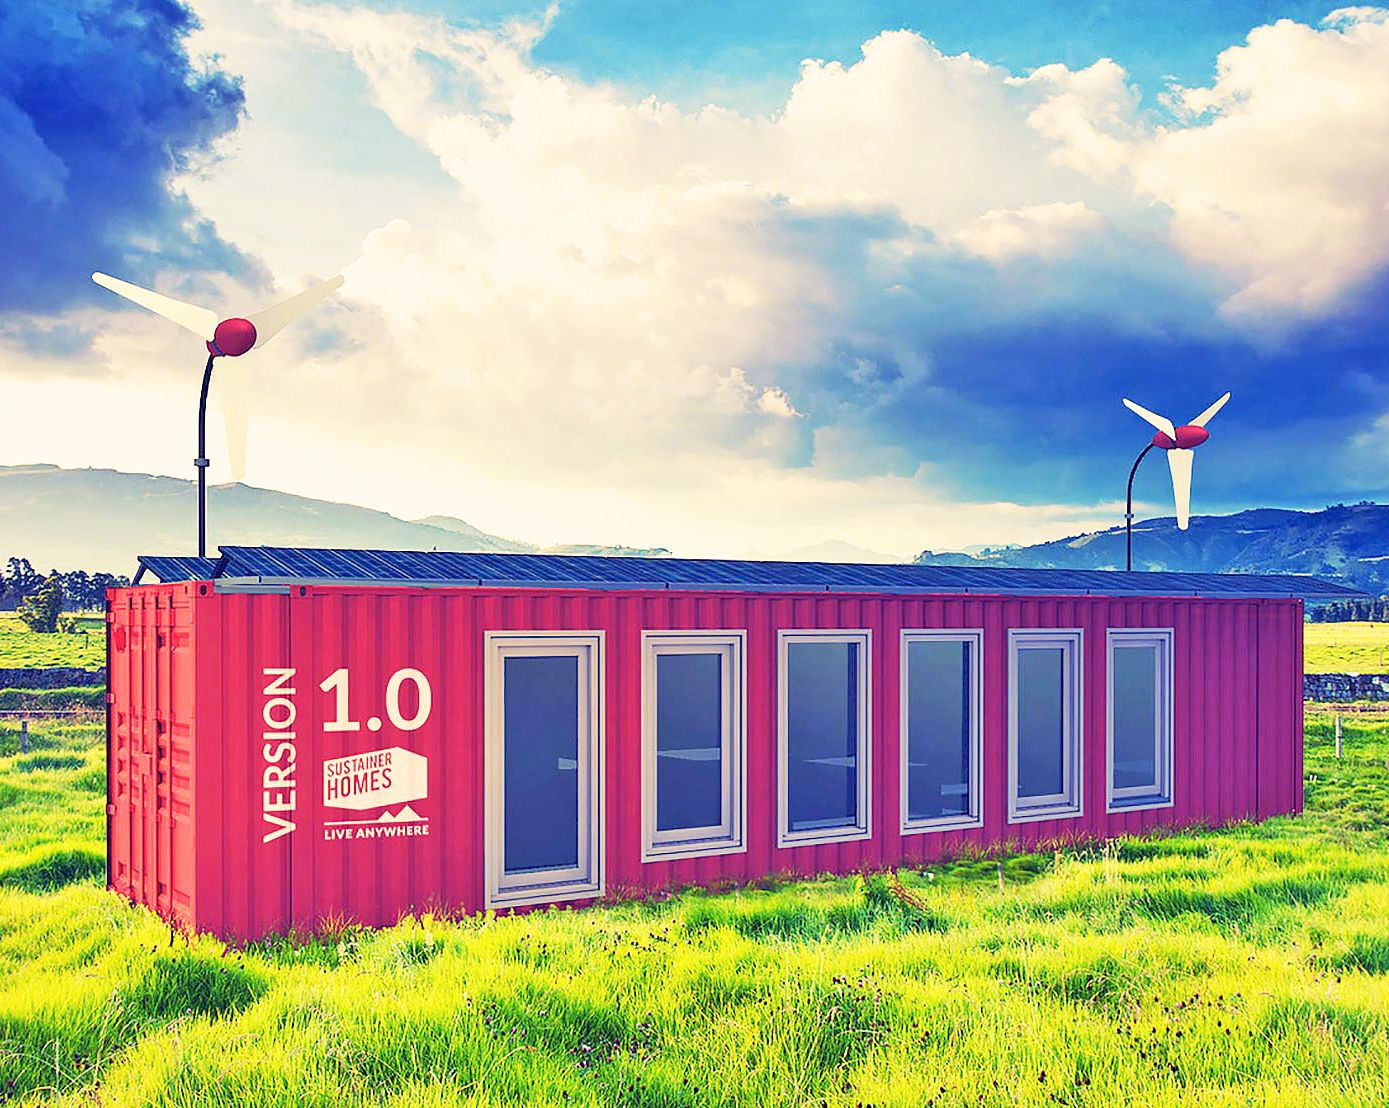 Best Kitchen Gallery: Solar Powered Sustainer Homes Give You The Freedom To Live Anywhere of Solar Shipping Container Home on rachelxblog.com